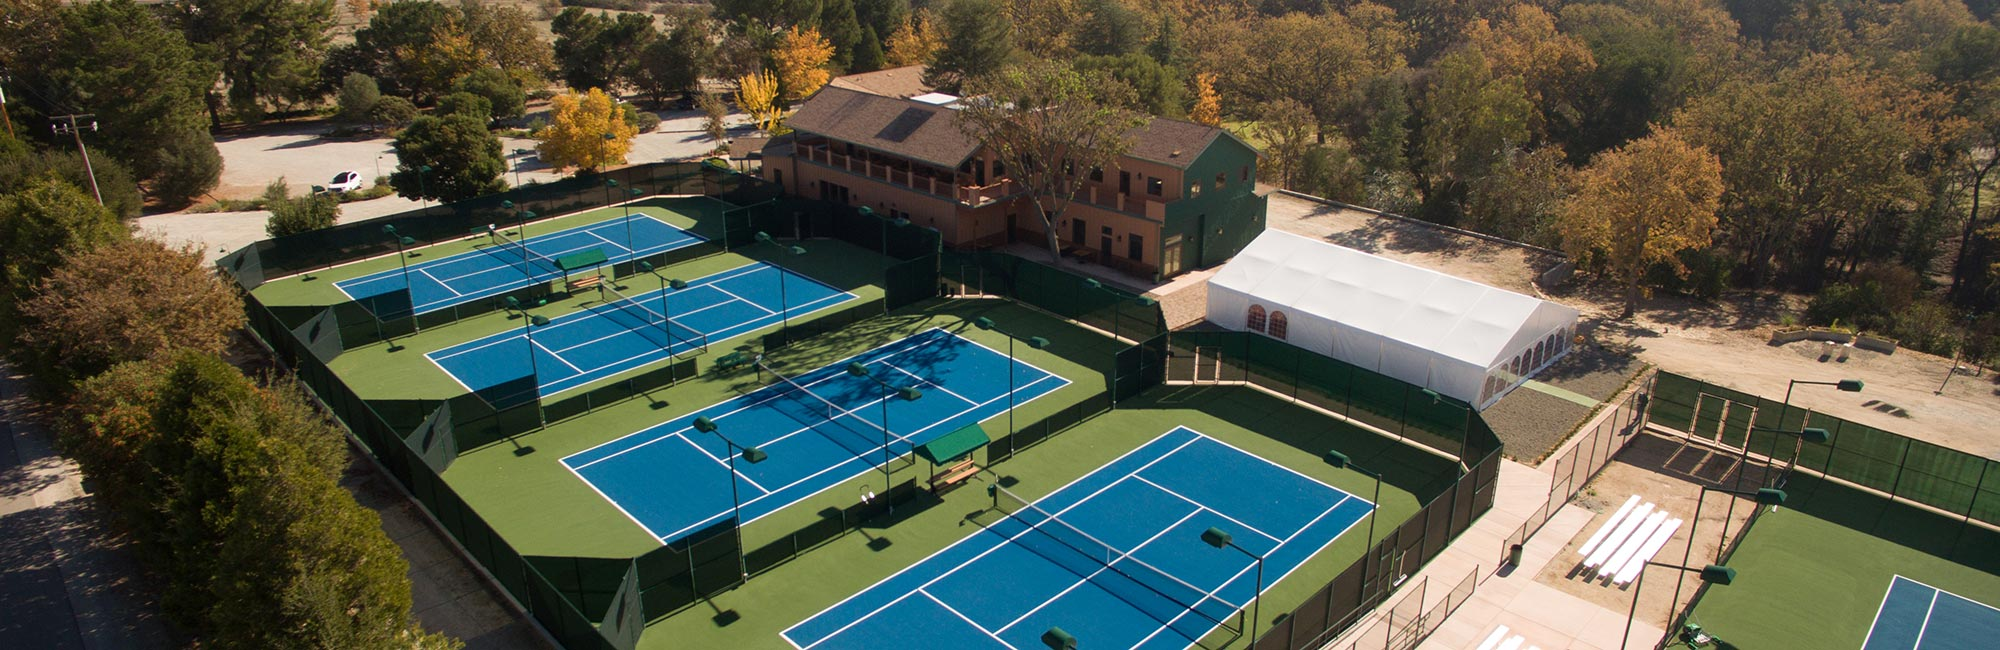 About the Templeton Tennis Ranch